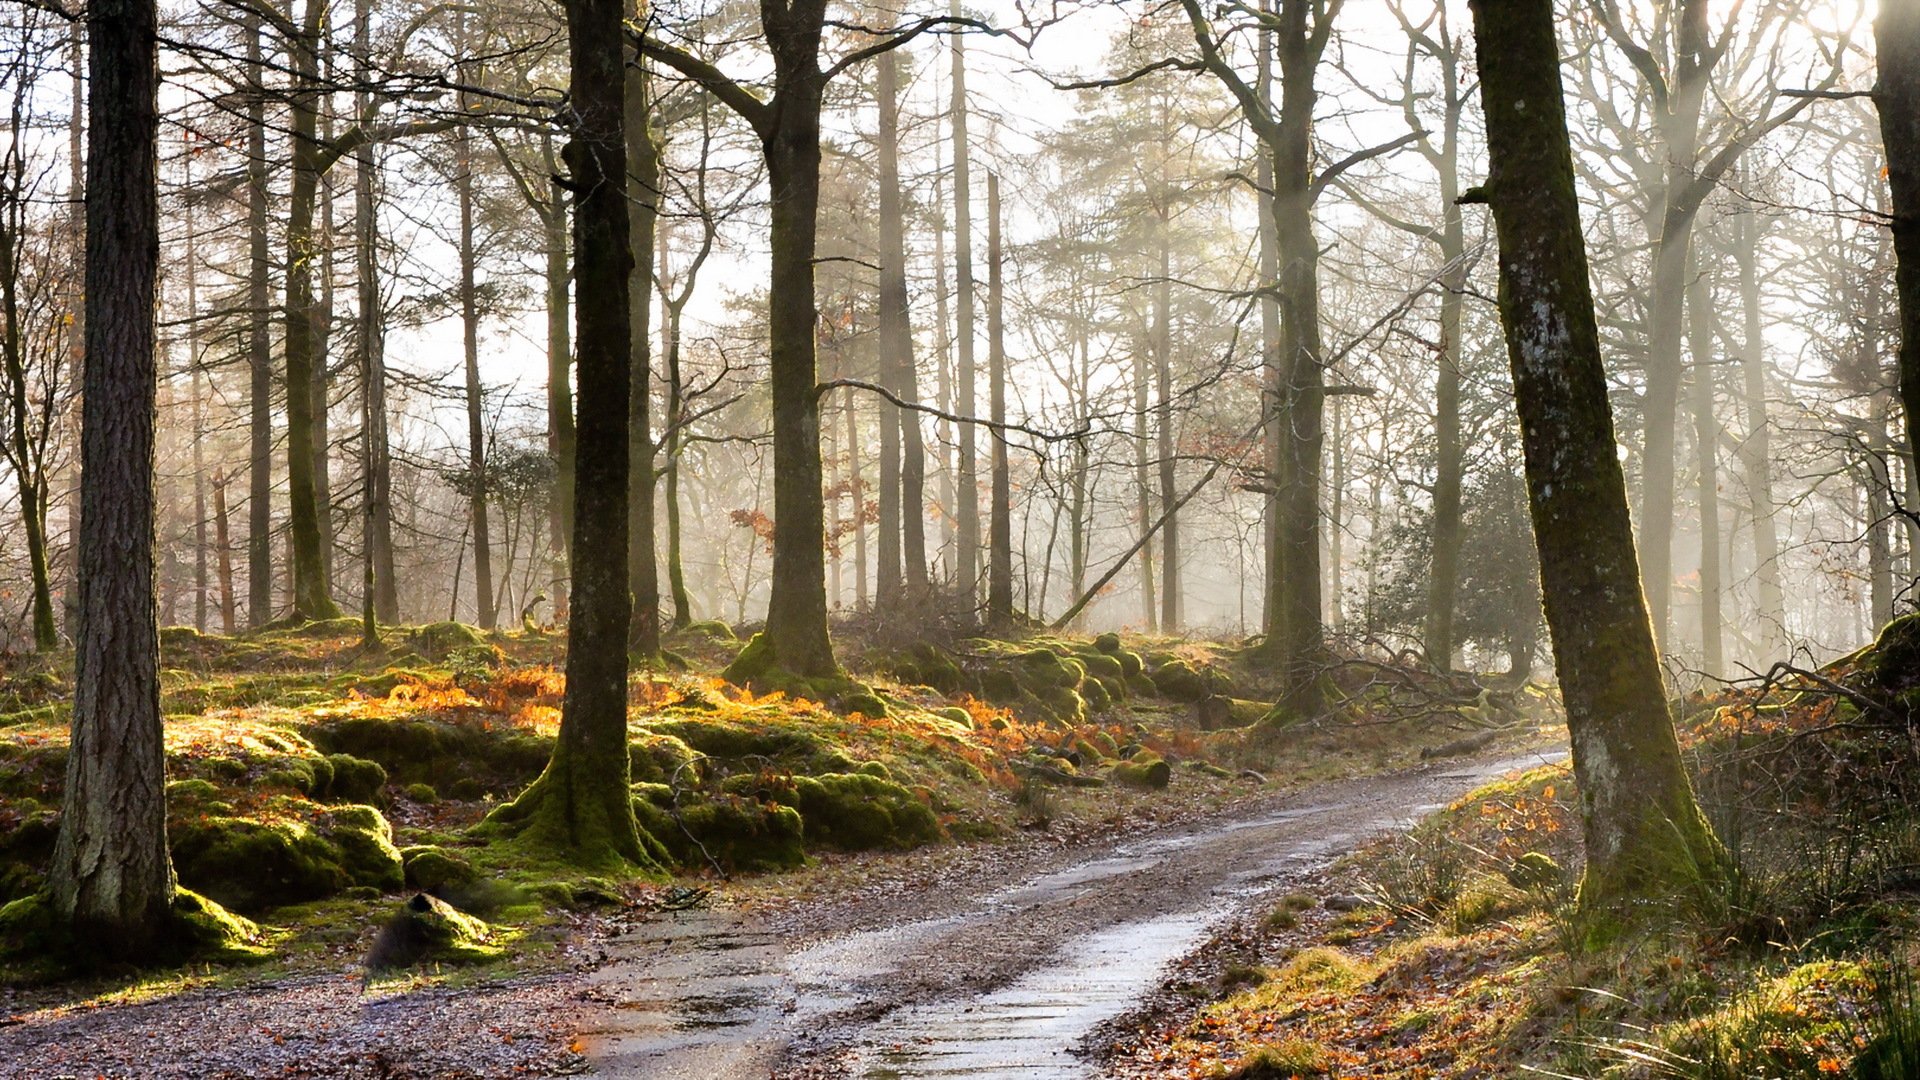 General 1920x1080 forest trees fall dirt road wet mist